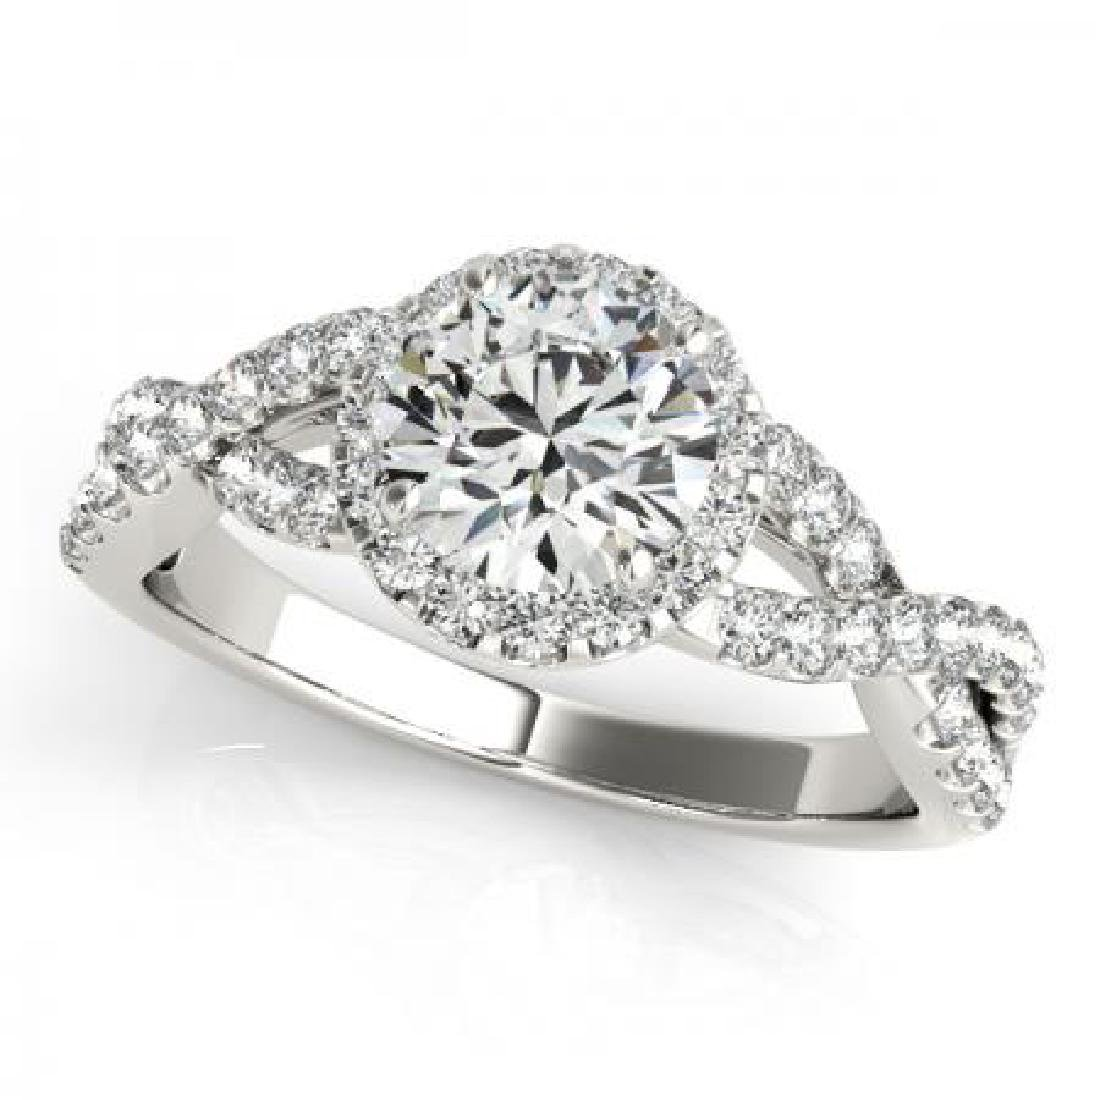 CERTIFIED PLATINUM 1.27 CT G-H/VS-SI1 DIAMOND HALO ENGA